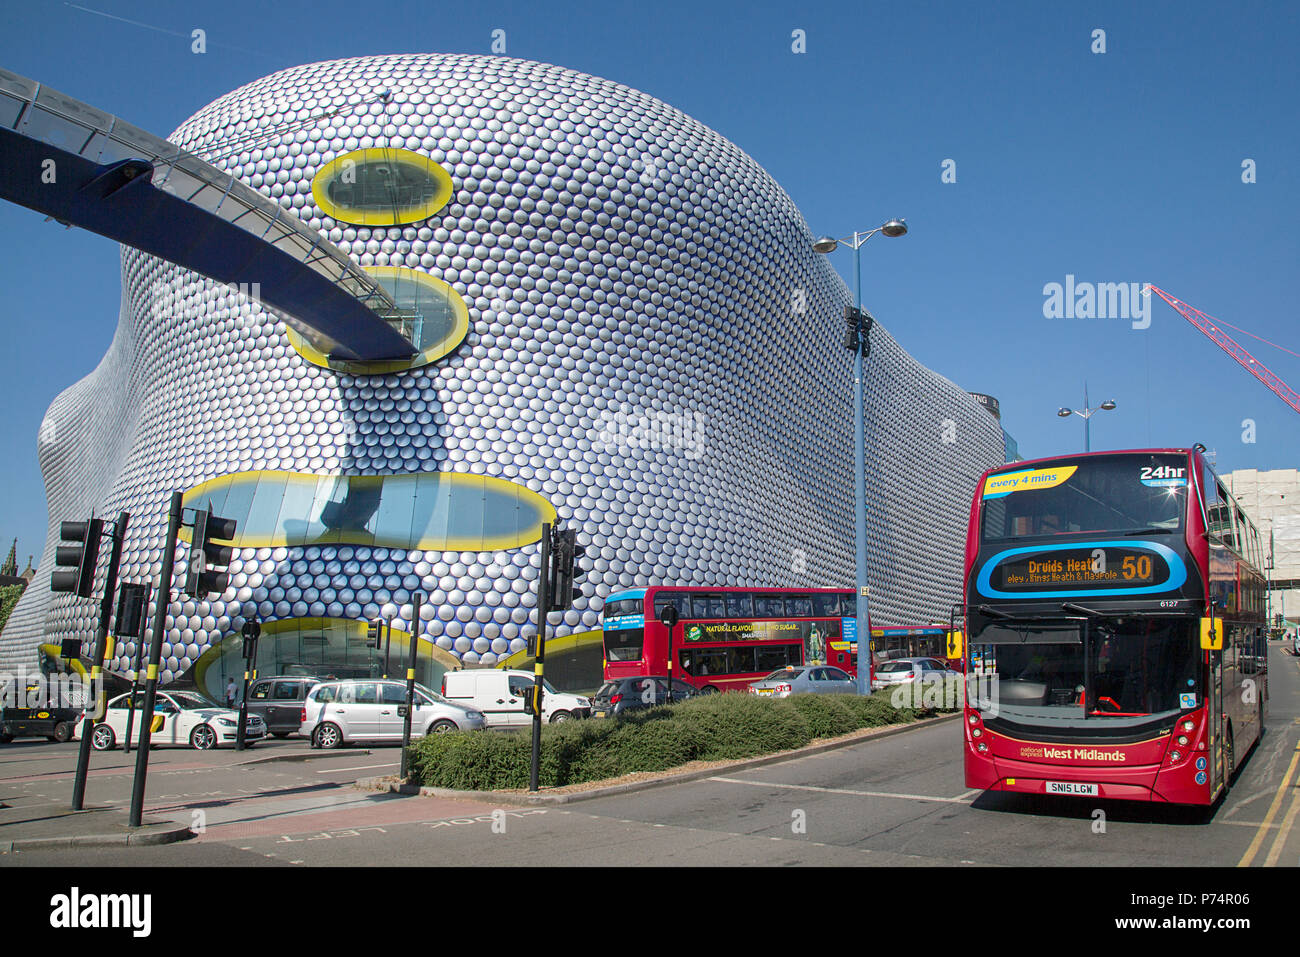 Birmingham, UK: June 29, 2018: Selfridges Department Store in Park Street part of the Bullring Shopping Centre. A bus is stopped at a traffic light. - Stock Image